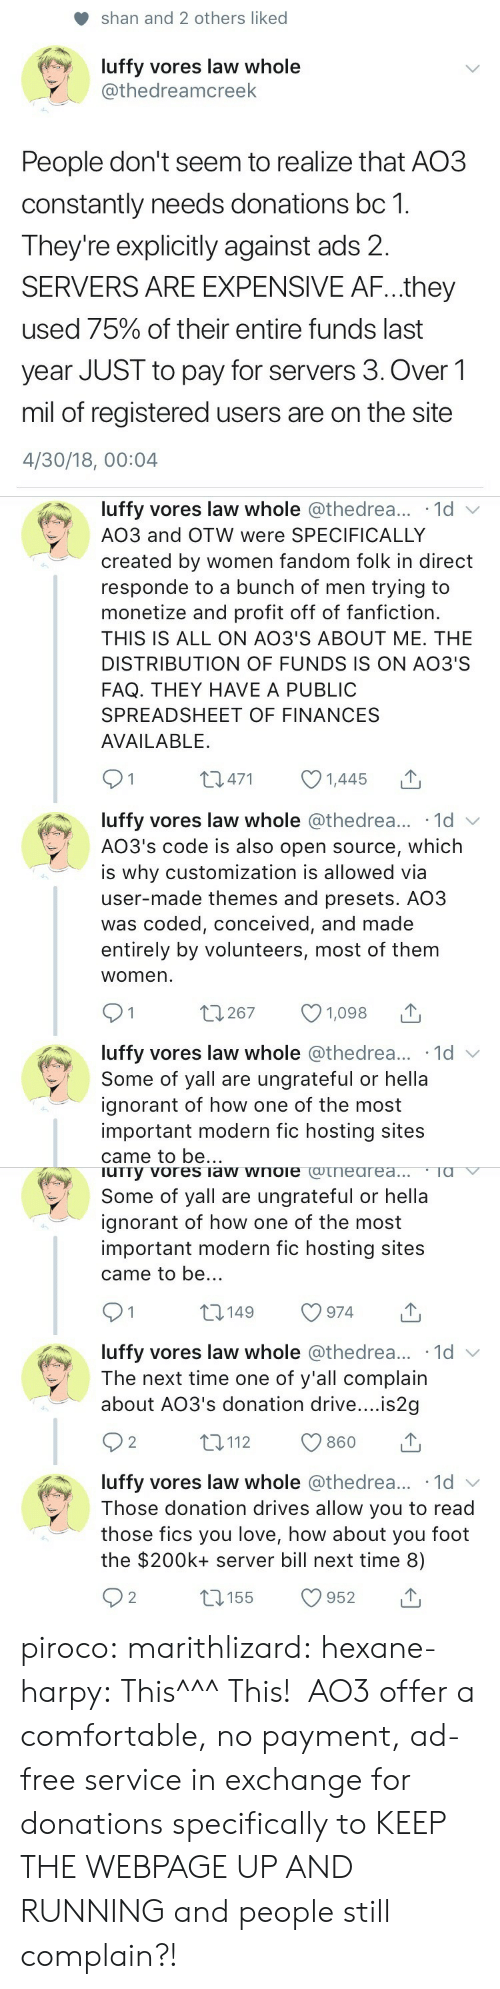 hosting: shan and 2 others liked  luffy vores law whole  @thedreamcreek  People don't seem to realize that AO3  constantly needs donations bc 1.  Theyre explicitly against ads 2.  SERVERS ARE EXPENSIVE AF...they  used 75% of their entire funds last  year JUST to pay for servers 3. Over1  mil of registered users are on the site  4/30/18, 00:04   luffy vores law whole @thedrea... 1d v  AO3 and OTW were SPECIFICALLY  created by women fandom folk in direct  responde to a bunch of men trying to  monetize and profit off of fanfiction.  THIS IS ALL ON AO3'S ABOUT ME. THE  DISTRIBUTION OF FUNDS IS ON AO3'S  FAQ. THEY HAVE A PUBLIC  SPREADSHEET OF FINANCES  AVAILABLE.  01 0471 1445  luffy vores law whole @thedrea... 1d  AO3's code is also open source, which  is why customization is allowed via  user-made themes and presets. AO3  was coded, conceived, and made  entirely by volunteers, most of them  womern  luffy vores law whole @thedrea... 1d  Some of yall are ungrateful or hella  ignorant of how one of the most  important modern fic hosting sites  came to be..   urry vores law wnoie cotneareaTa  Some of yall are ungrateful or hella  ignorant of how one of the most  important modern fic hosting sites  came to be..  t0149 974  luffy vores law whole @thedrea... 1d v  The next time one of y'all complain  about AO3's donation drive....is2g  92 t112 860 T  luffy vores law whole @thedrea... 1d  Those donation drives allow you to read  those fics you love, how about you foot  the $200k+ server bill next time 8) piroco: marithlizard:  hexane-harpy: This^^^ This!  AO3 offer a comfortable, no payment, ad-free service in exchange for donations specifically to KEEP THE WEBPAGE UP AND RUNNING and people still complain?!